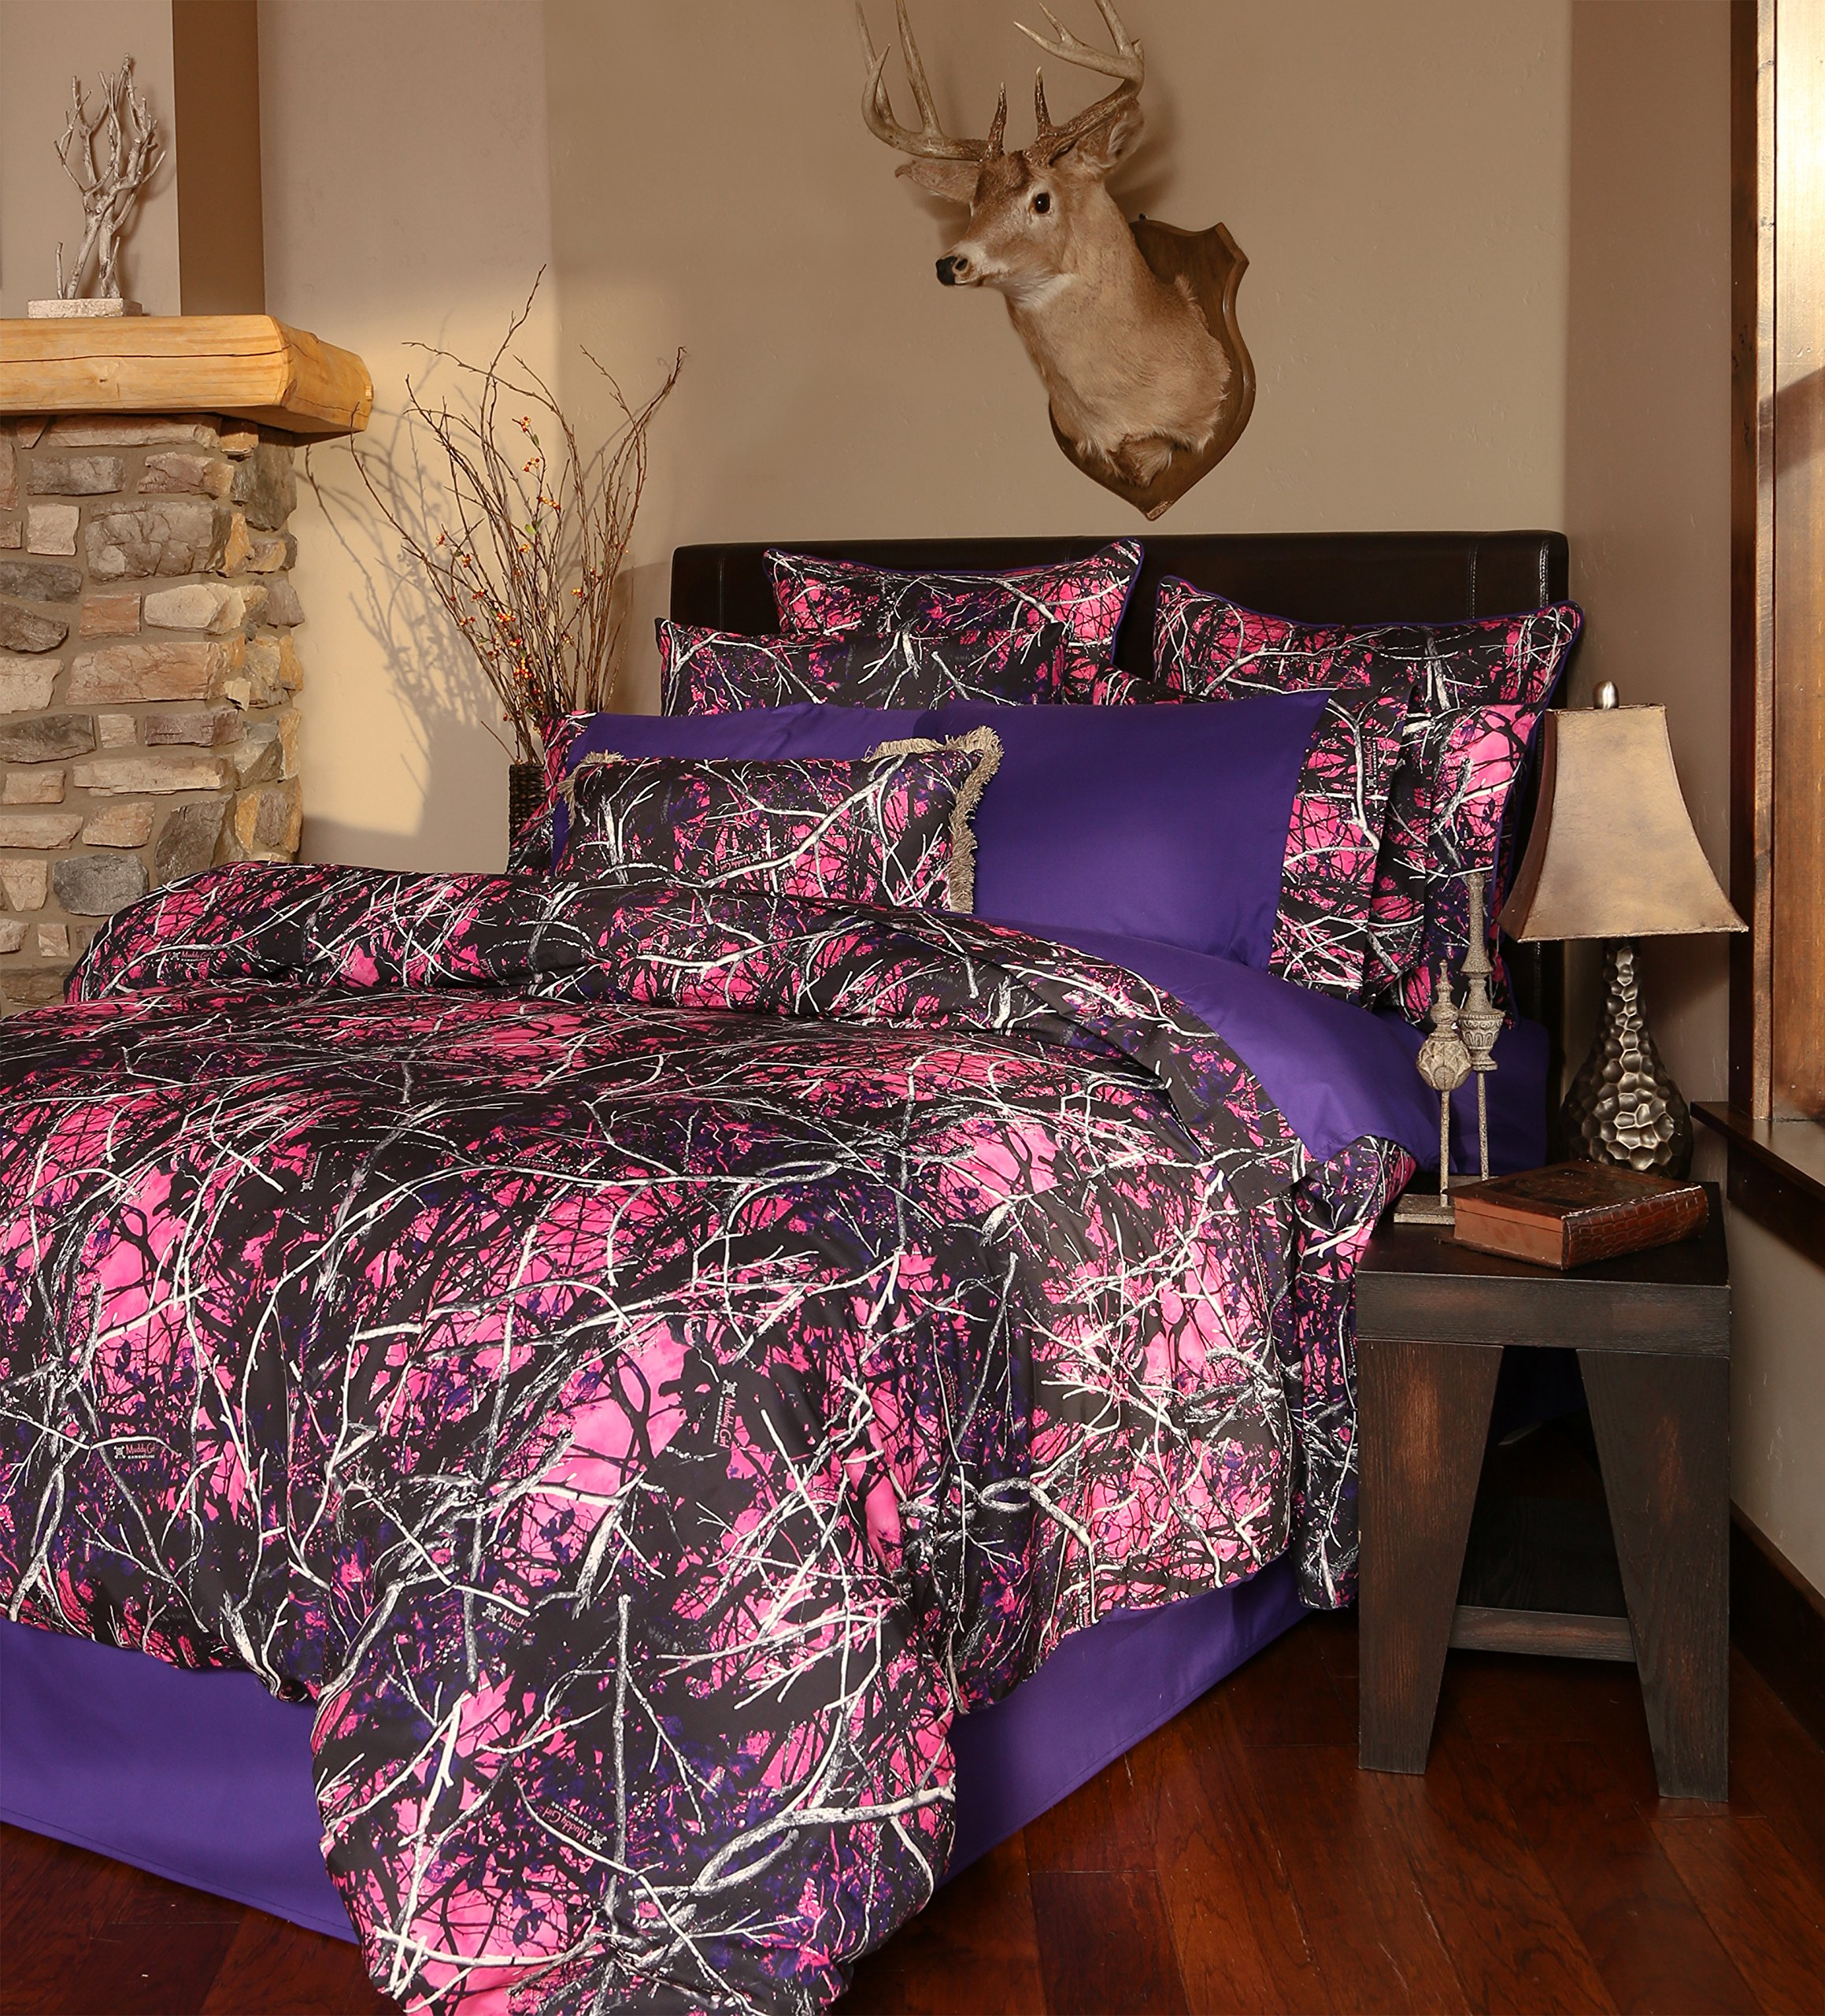 Carstens Muddy Girl Camo 4 Piece Comforter Bedding Set, King by Carstens